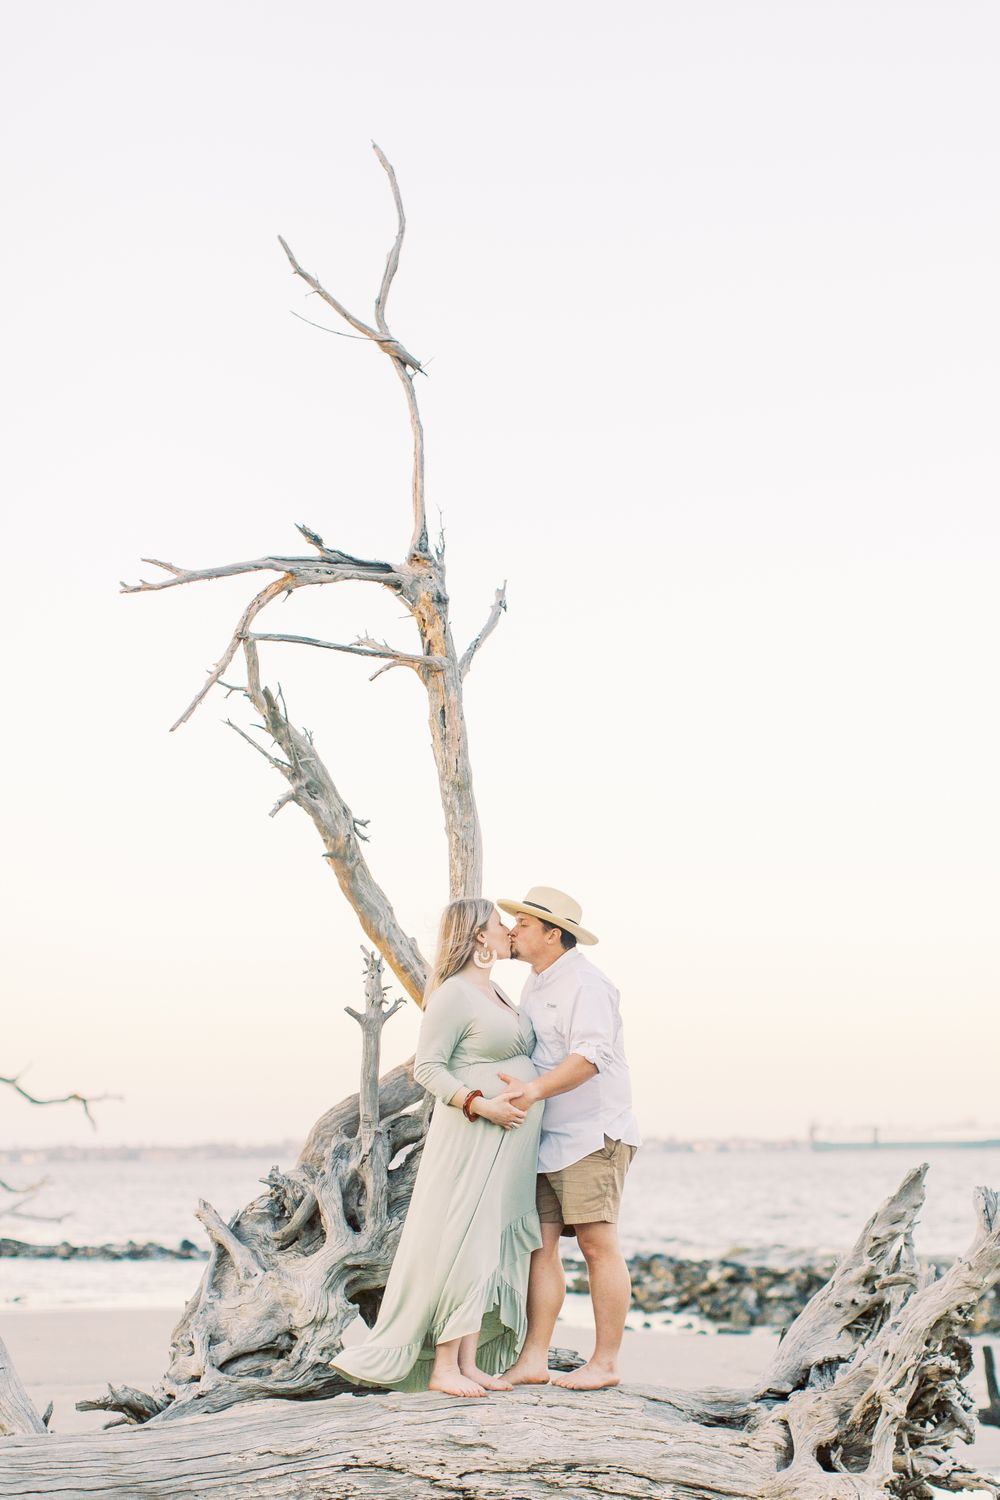 kayley and josh taking their maternity session photos at driftwood beach on jekyll island, ga